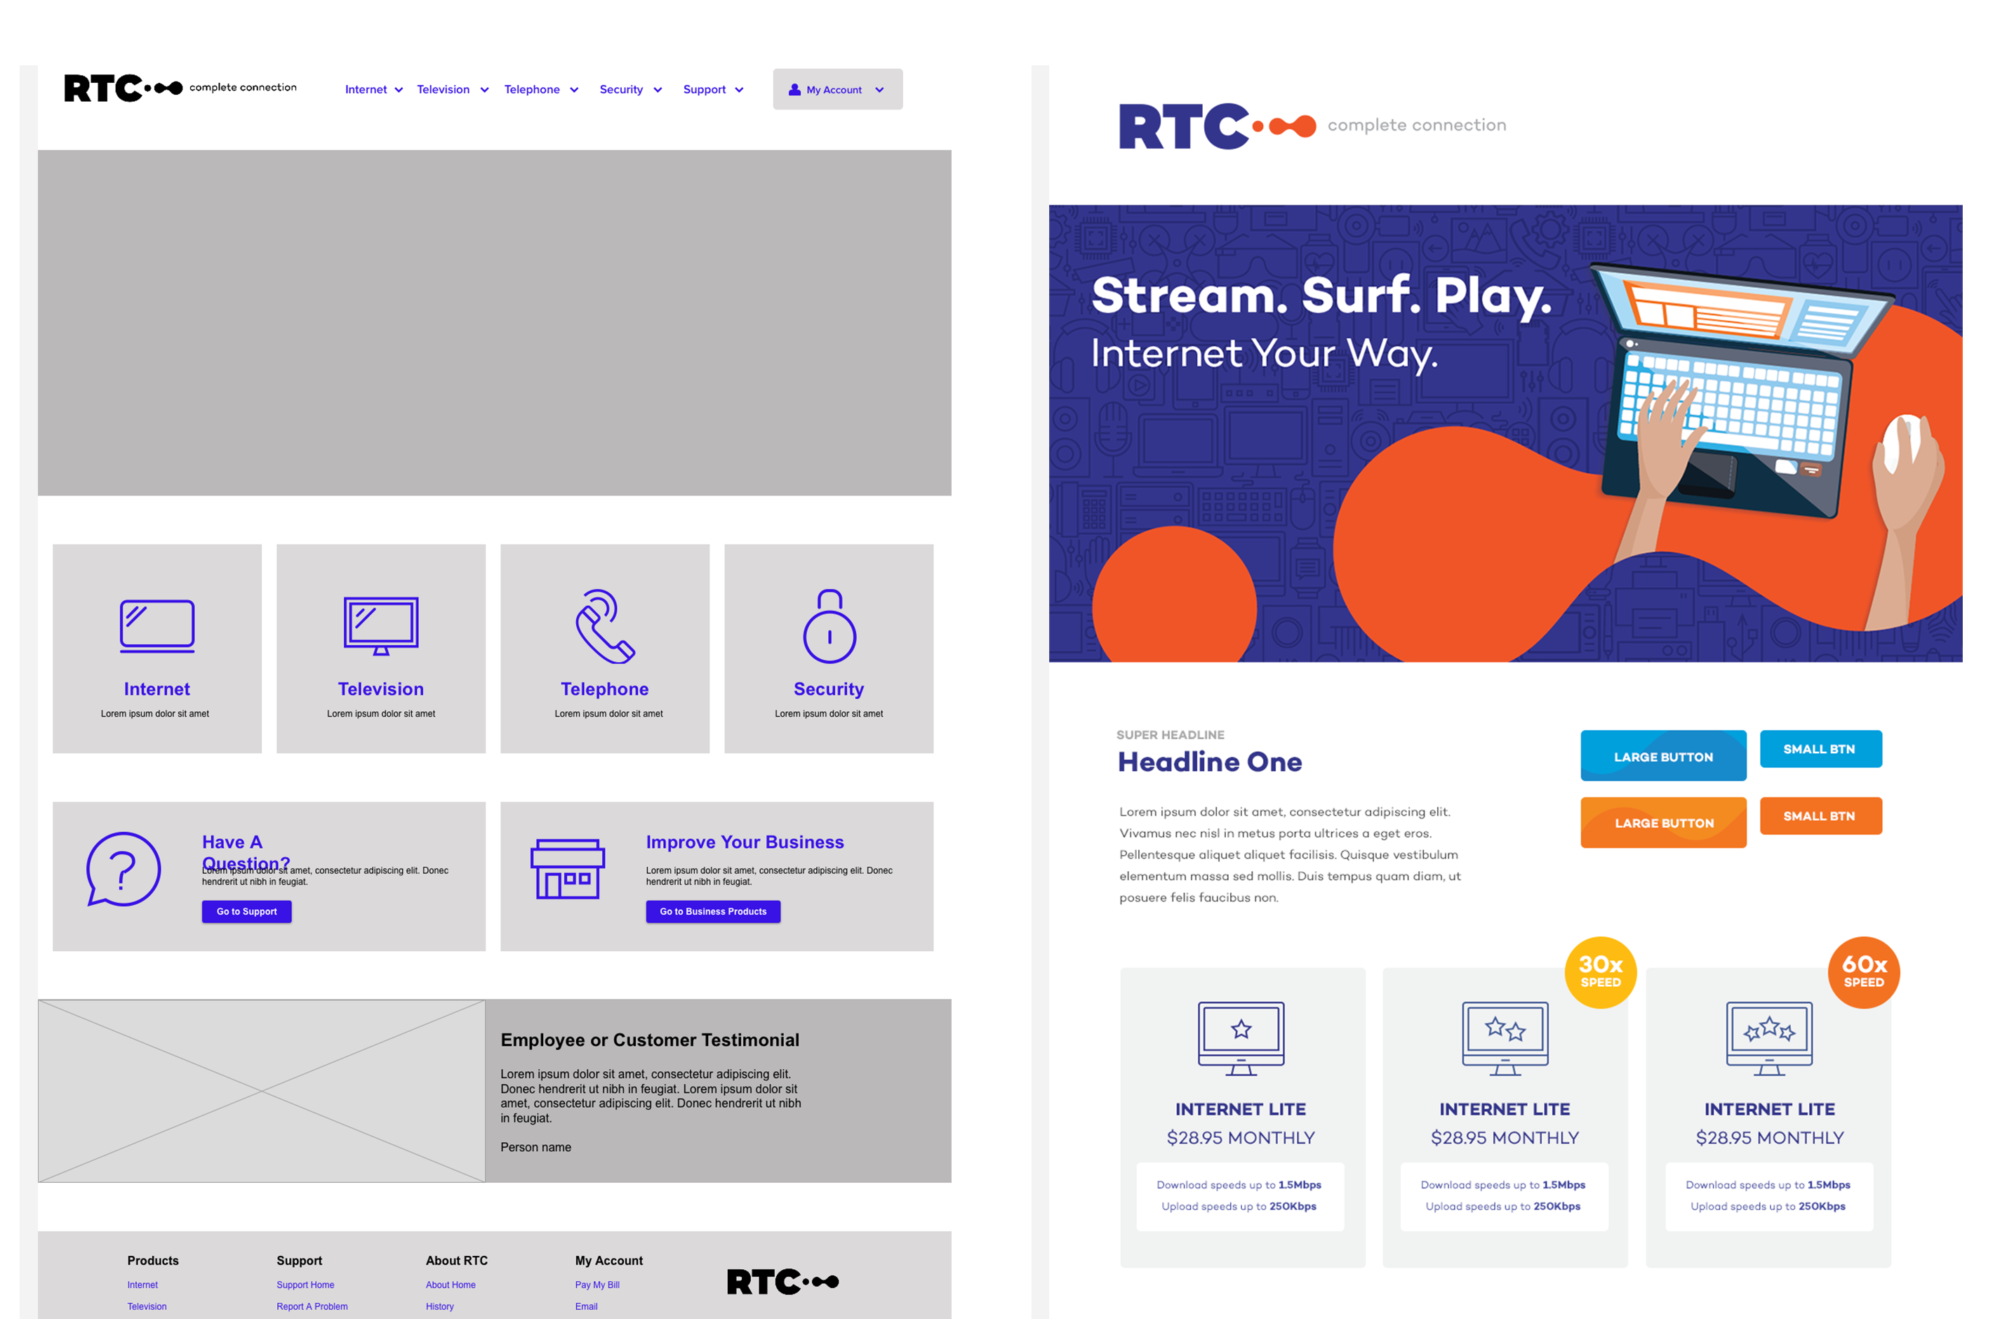 Reserve Telecommunications Wireframe & Styletile